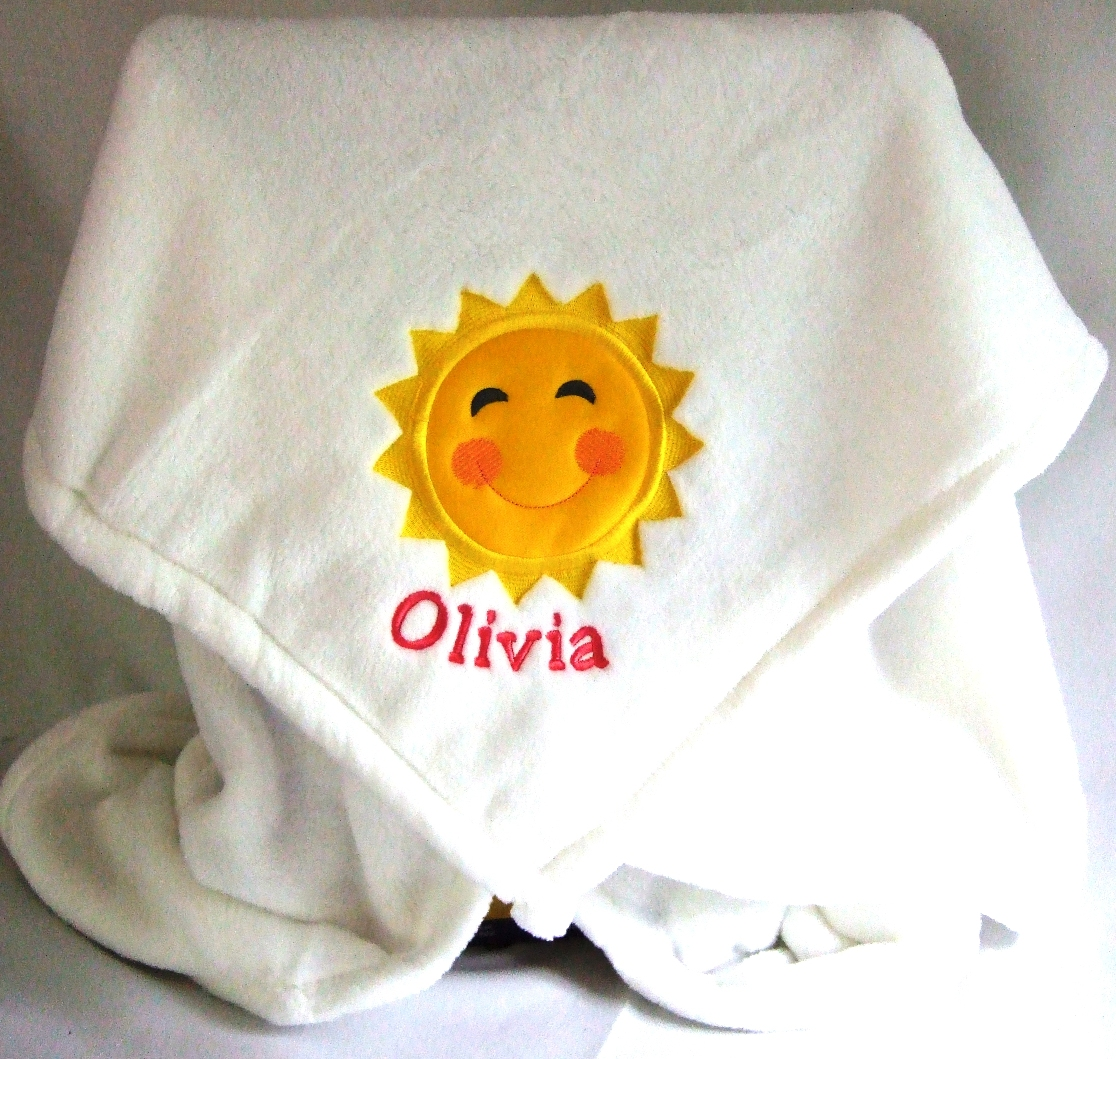 Personalized baby blanket with sun applique